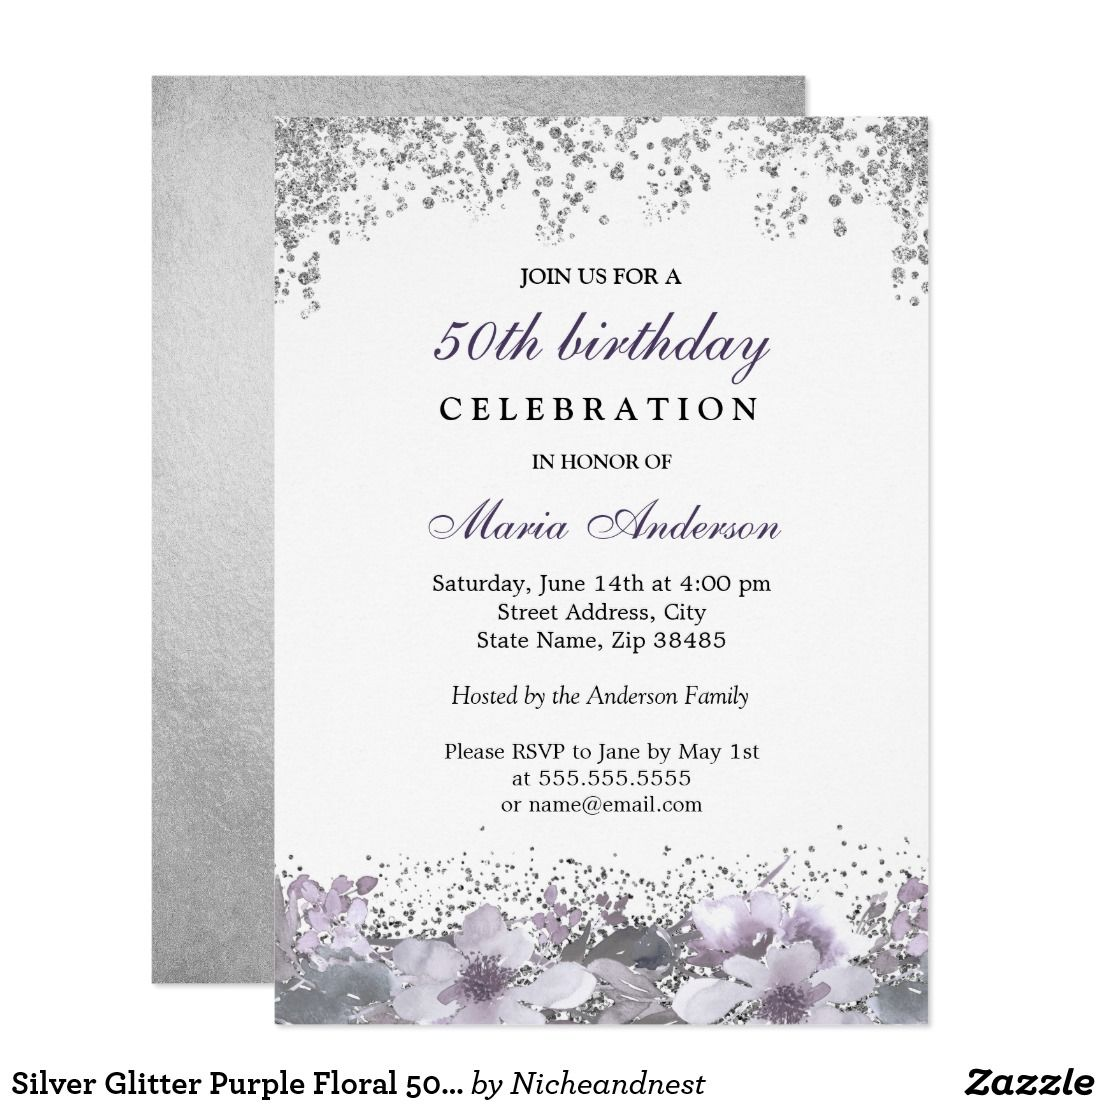 Silver Glitter Purple Floral 50th Birthday Invite See Matching Collection In Niche And Nest Store Fun